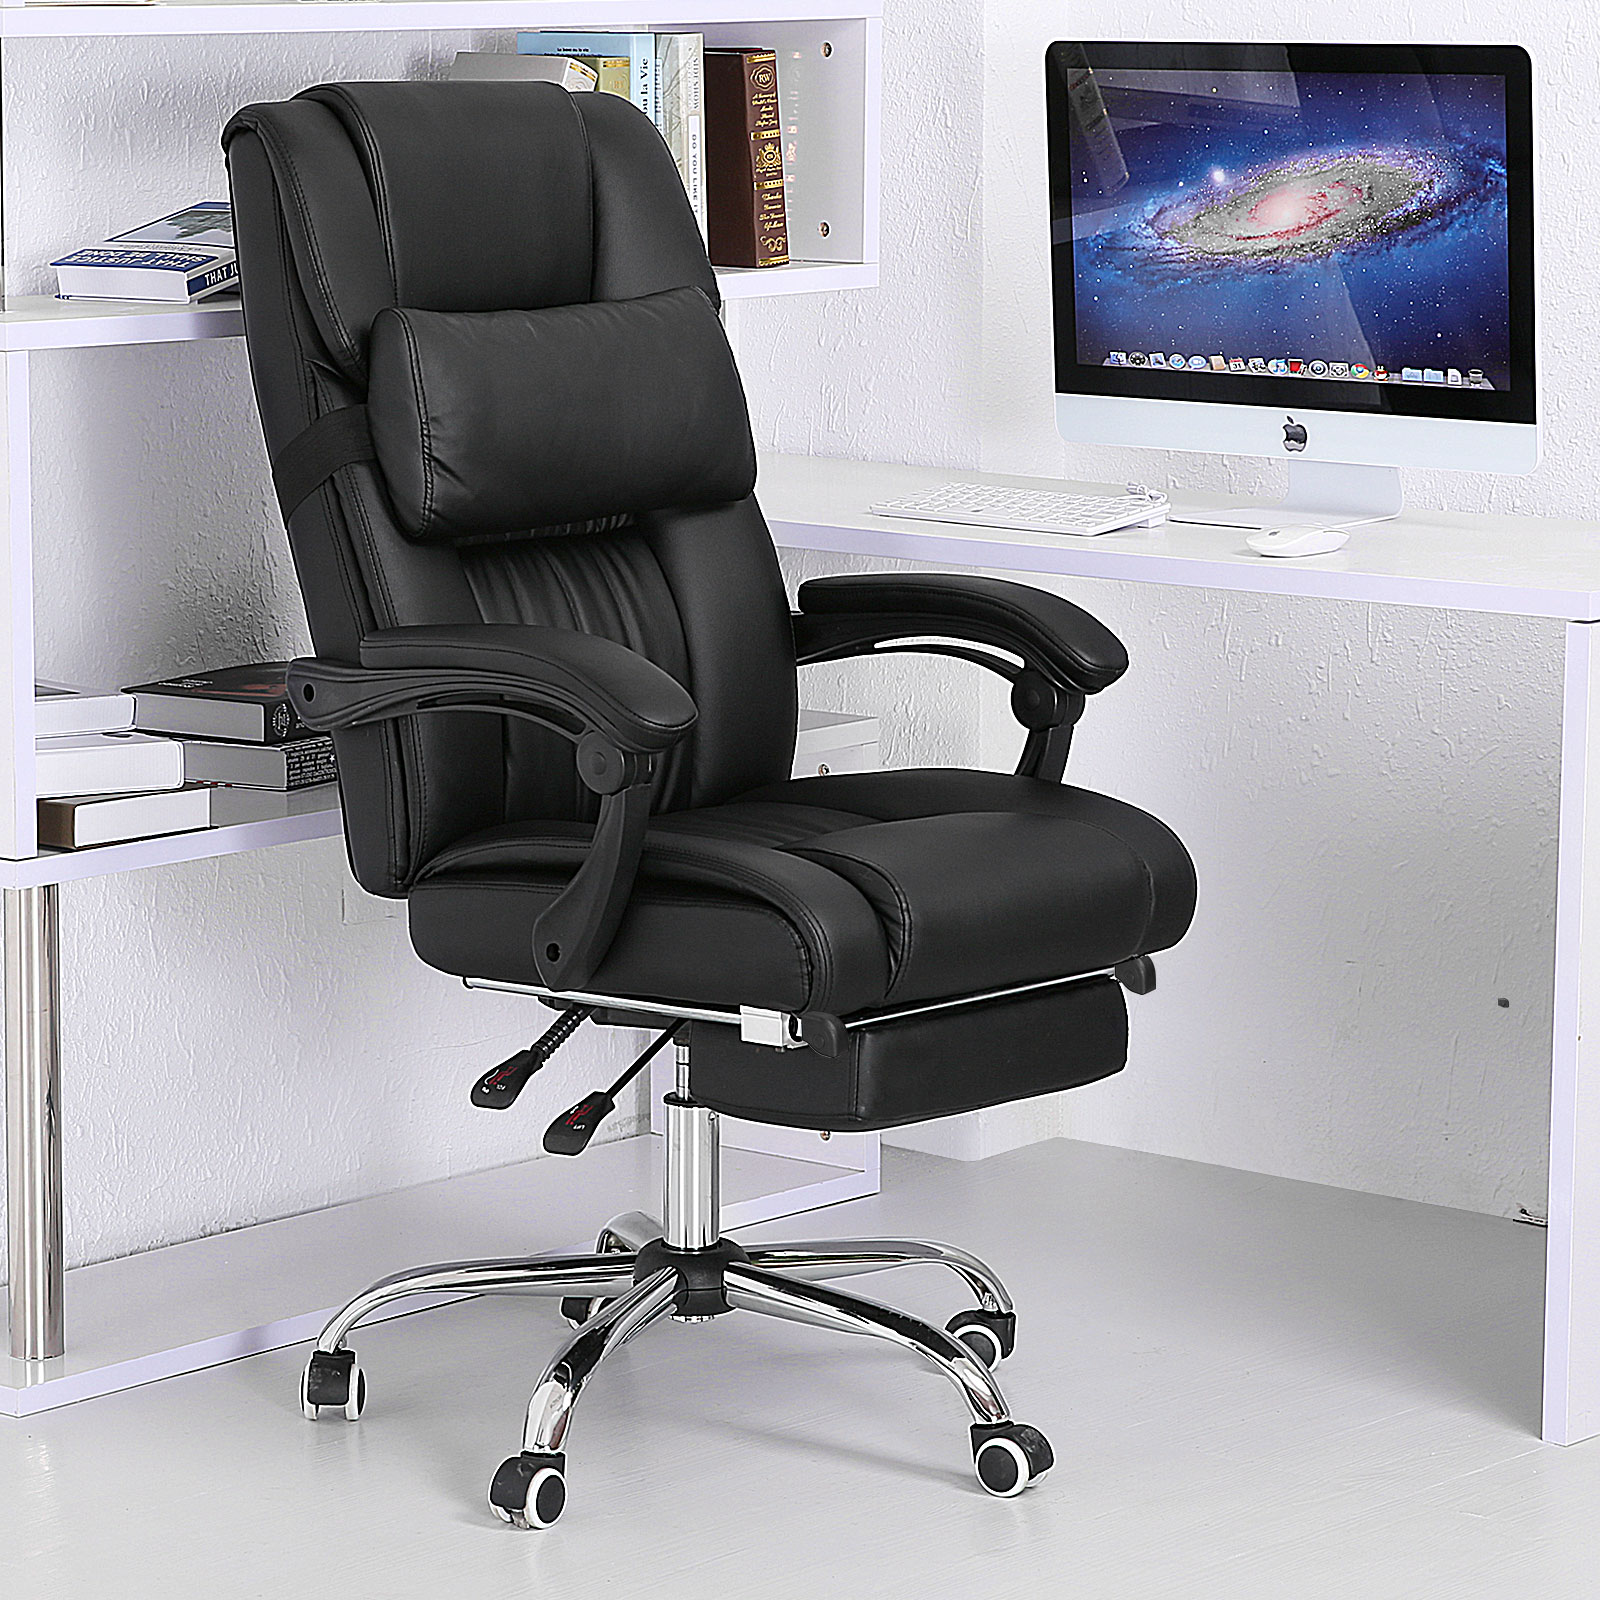 Ergonomic Reading Chair Executive Office Chair Ergonomic High Back Reclining